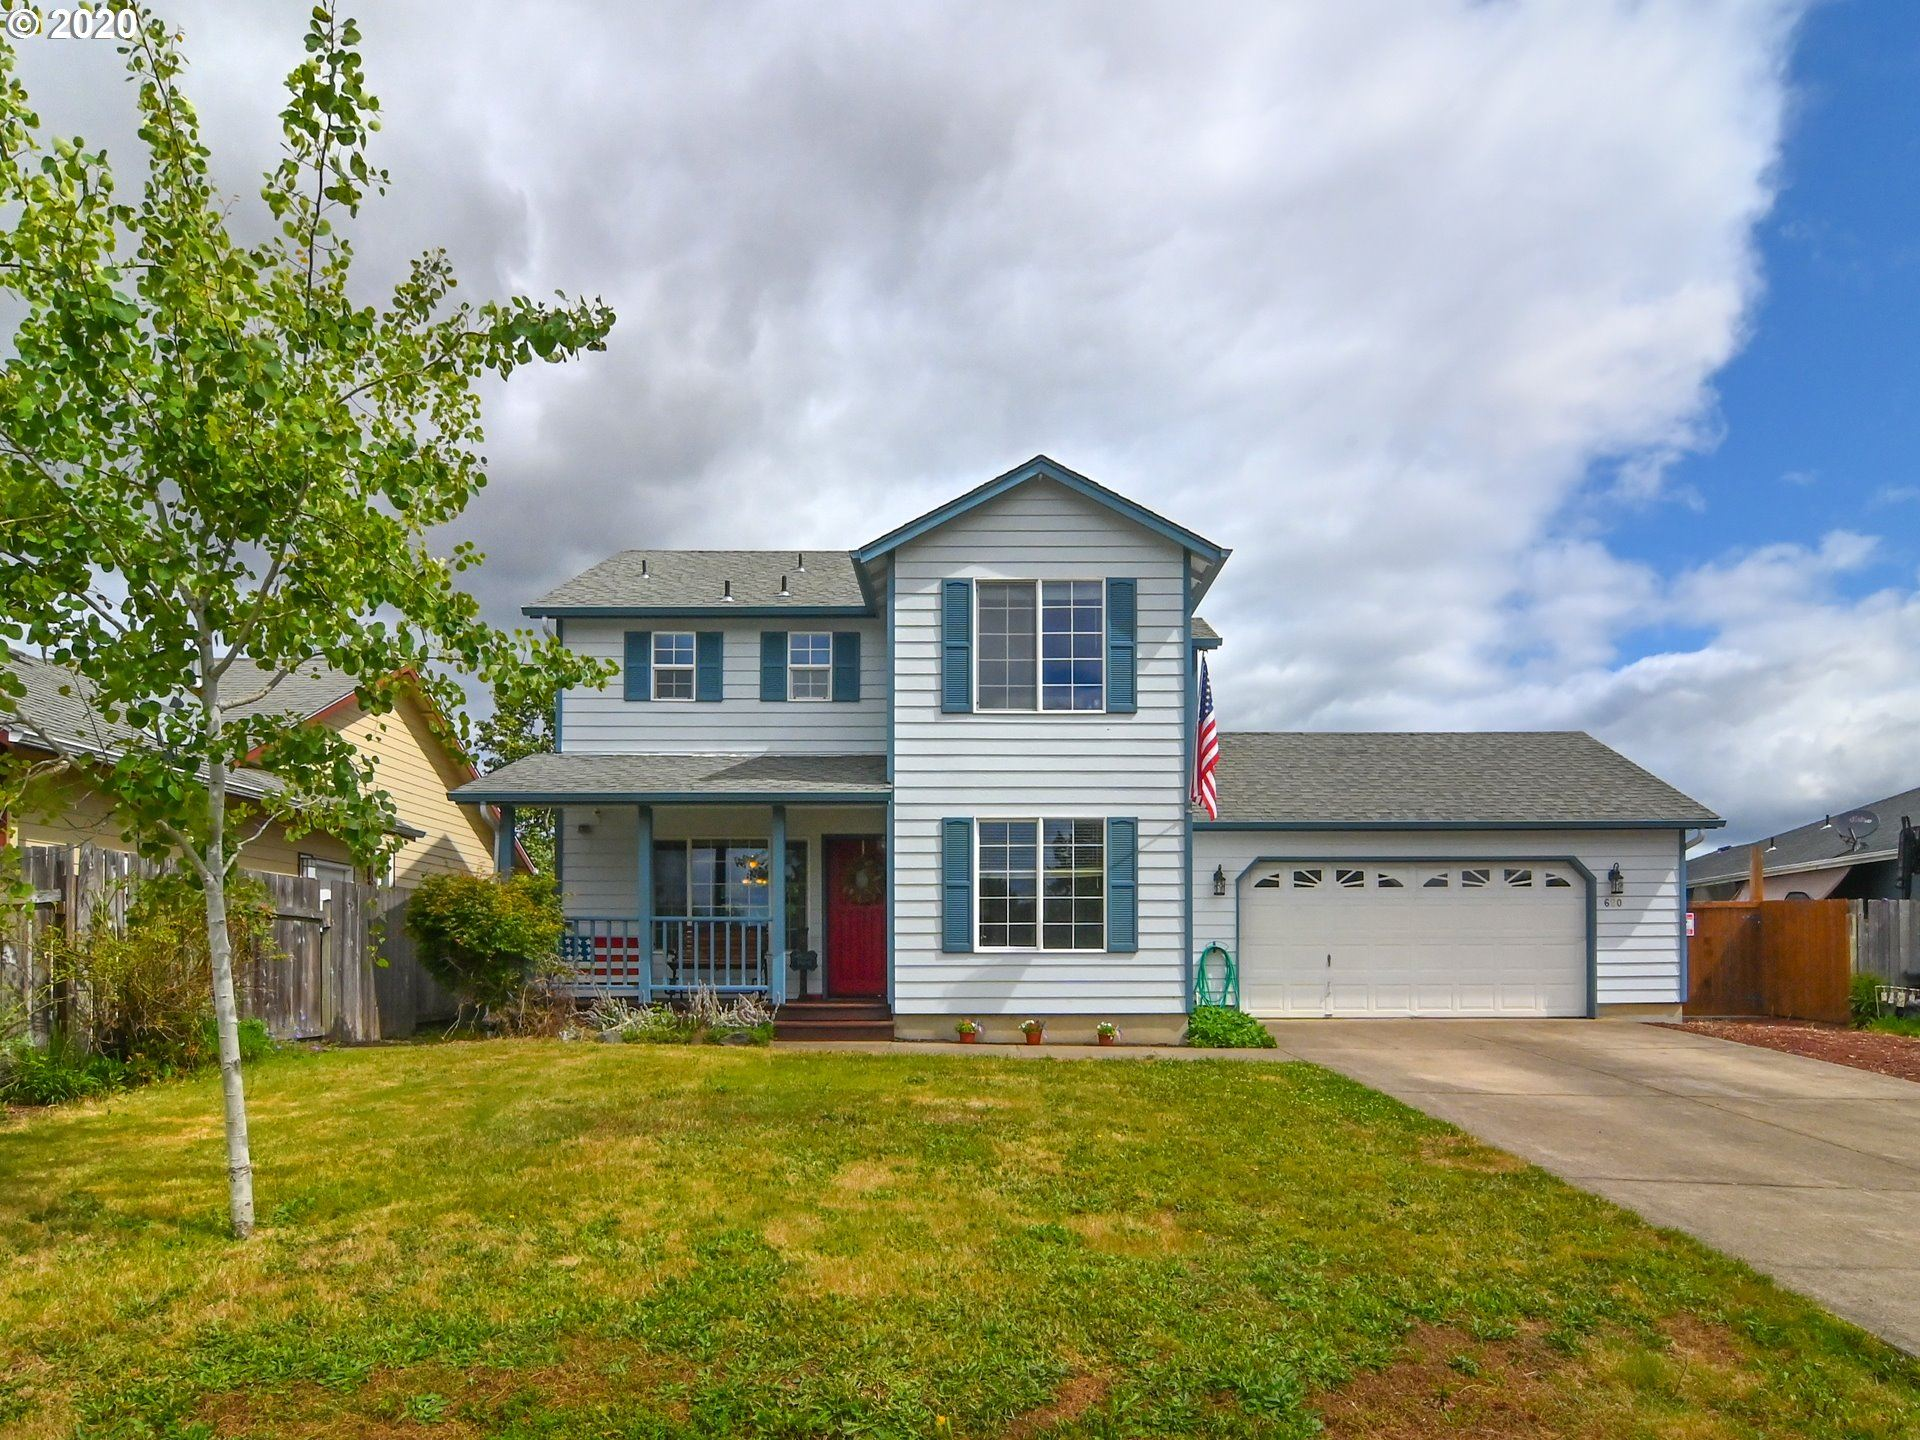 Photo for 680 PINE CT, Creswell, OR 97426 (MLS # 20622334)